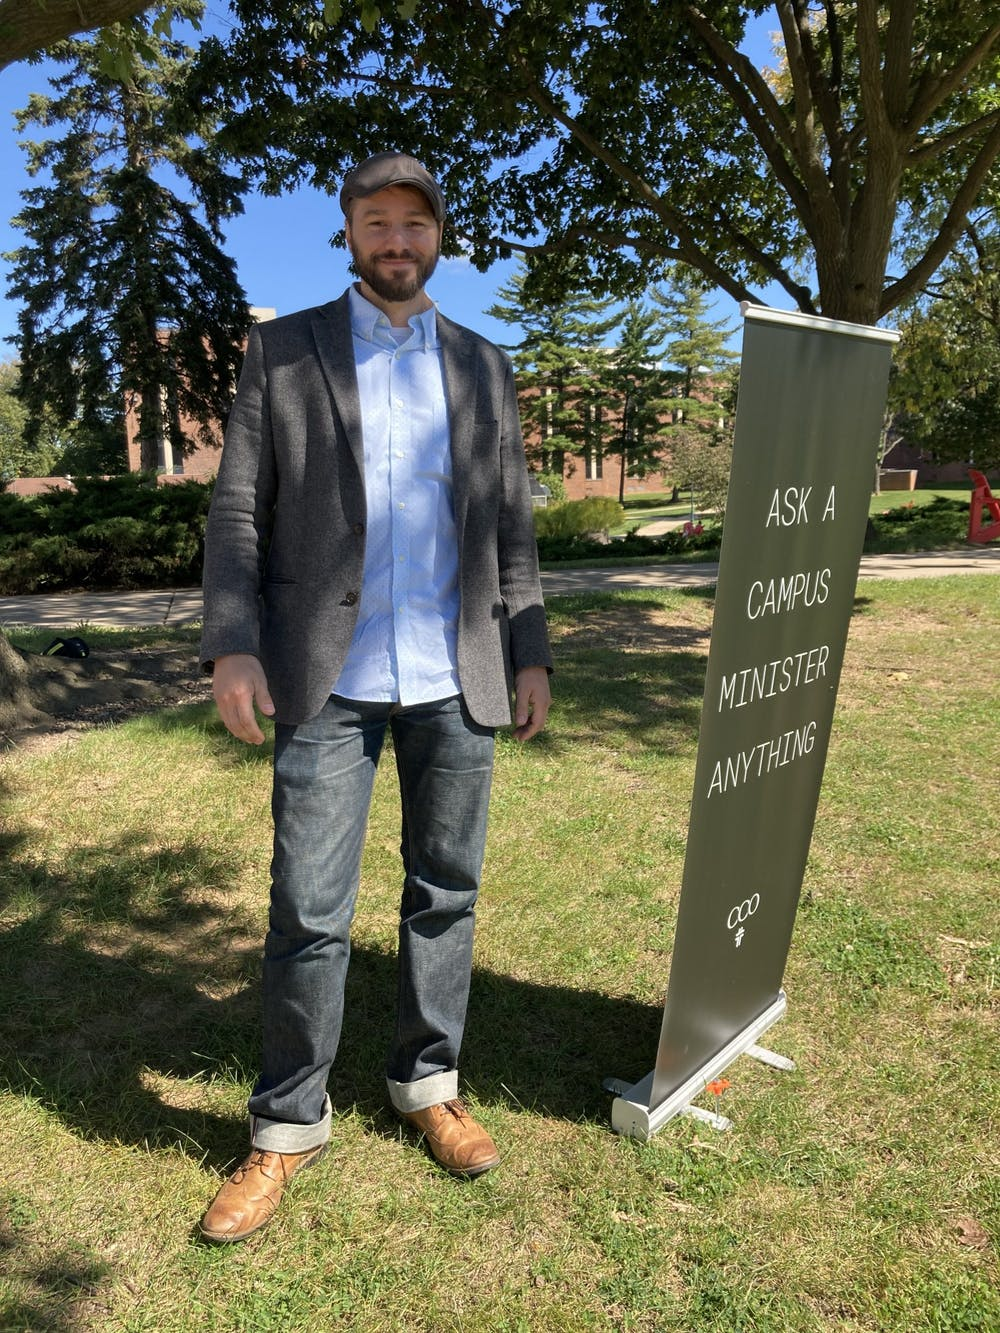 Ask questions, find answers: SU Campus Minister Matt Ramsay